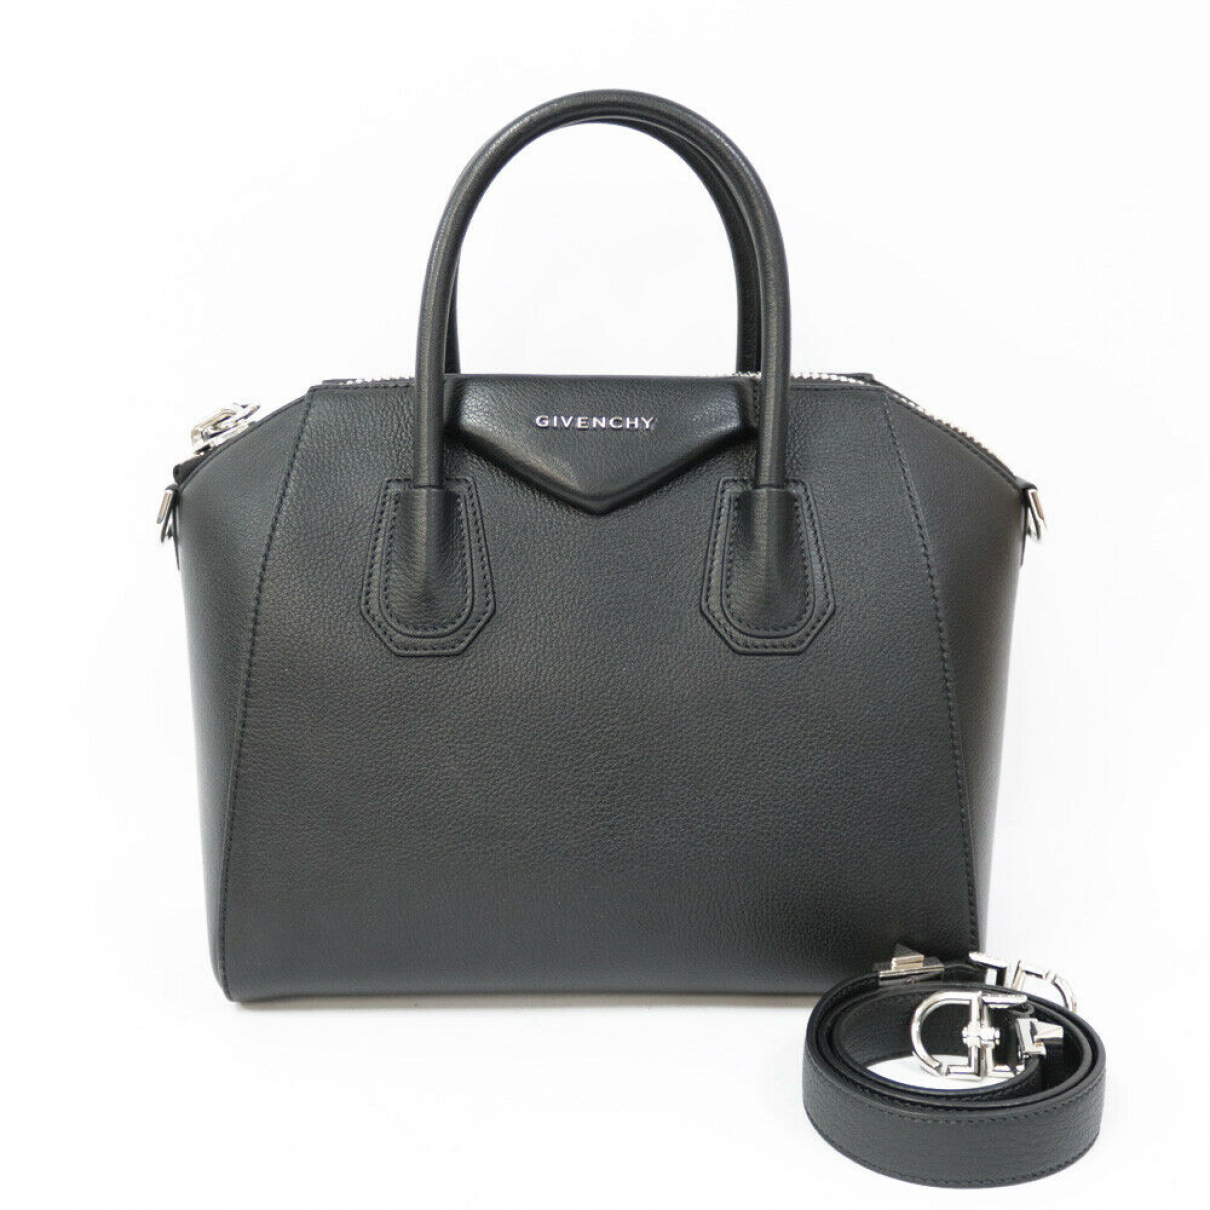 Givenchy N Leather handbag for Women N